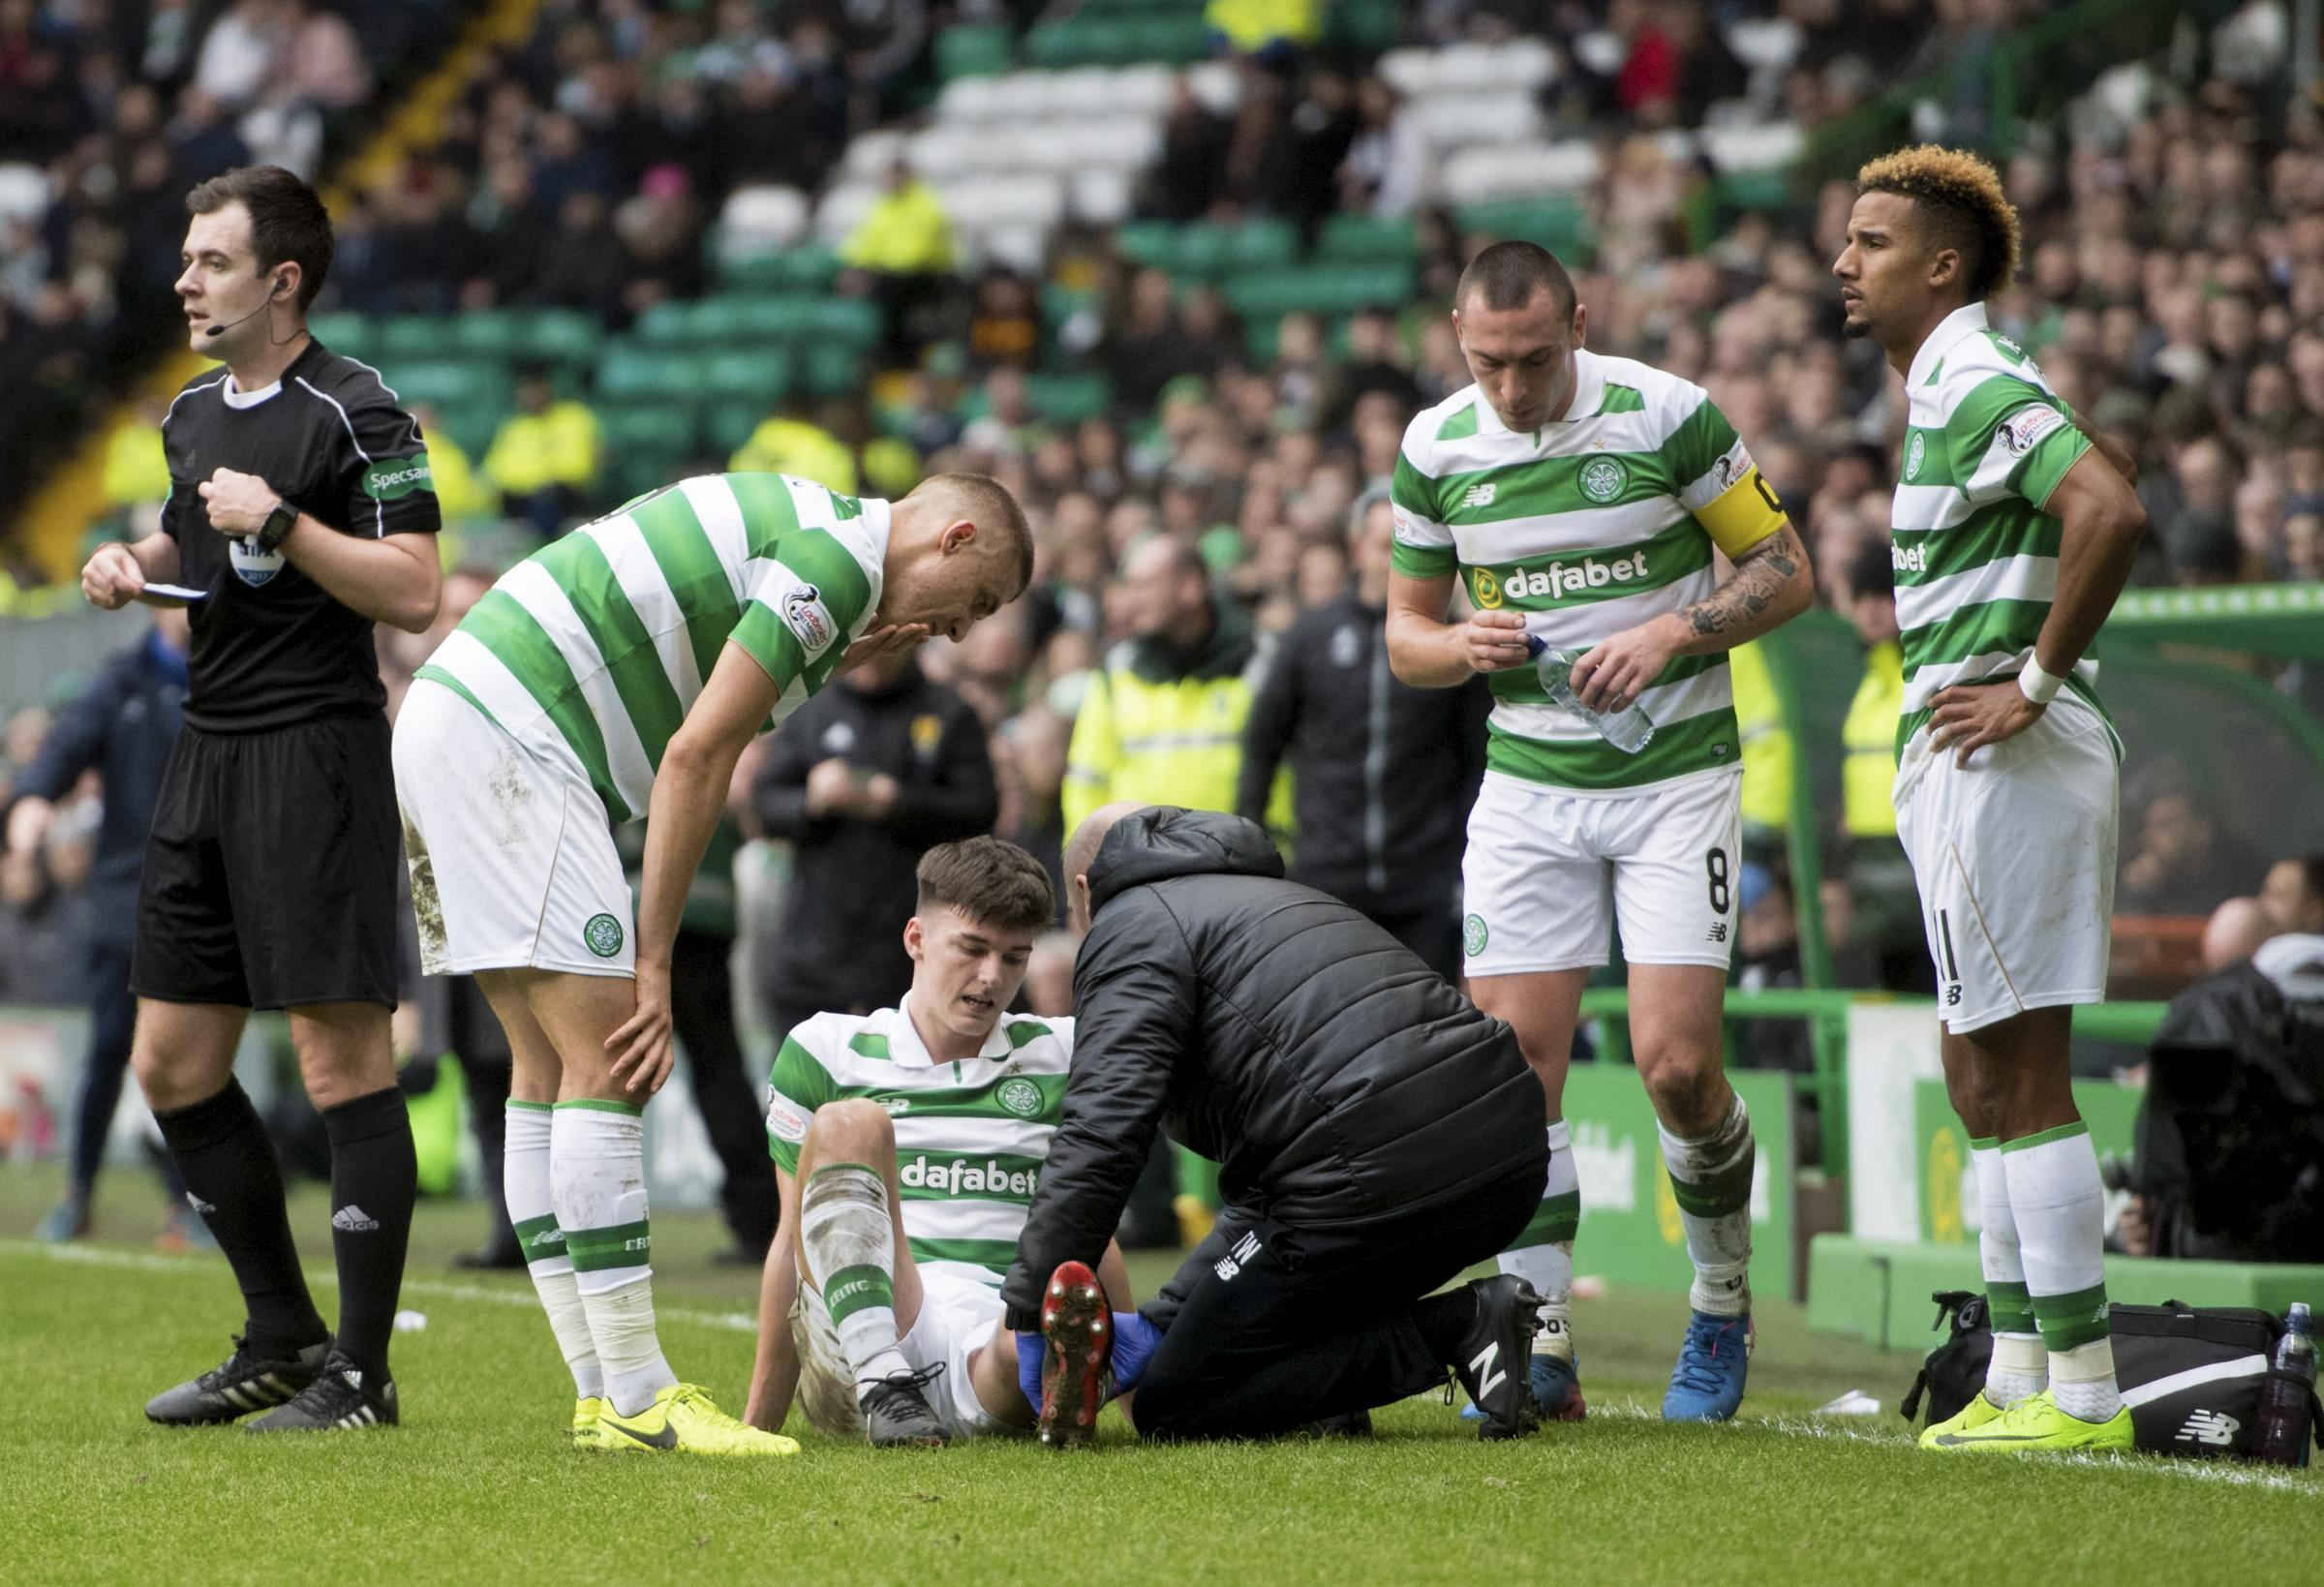 Celtic youngster Kieran Tierney: I feared the worst after horror tackle left my knee cut and bleeding